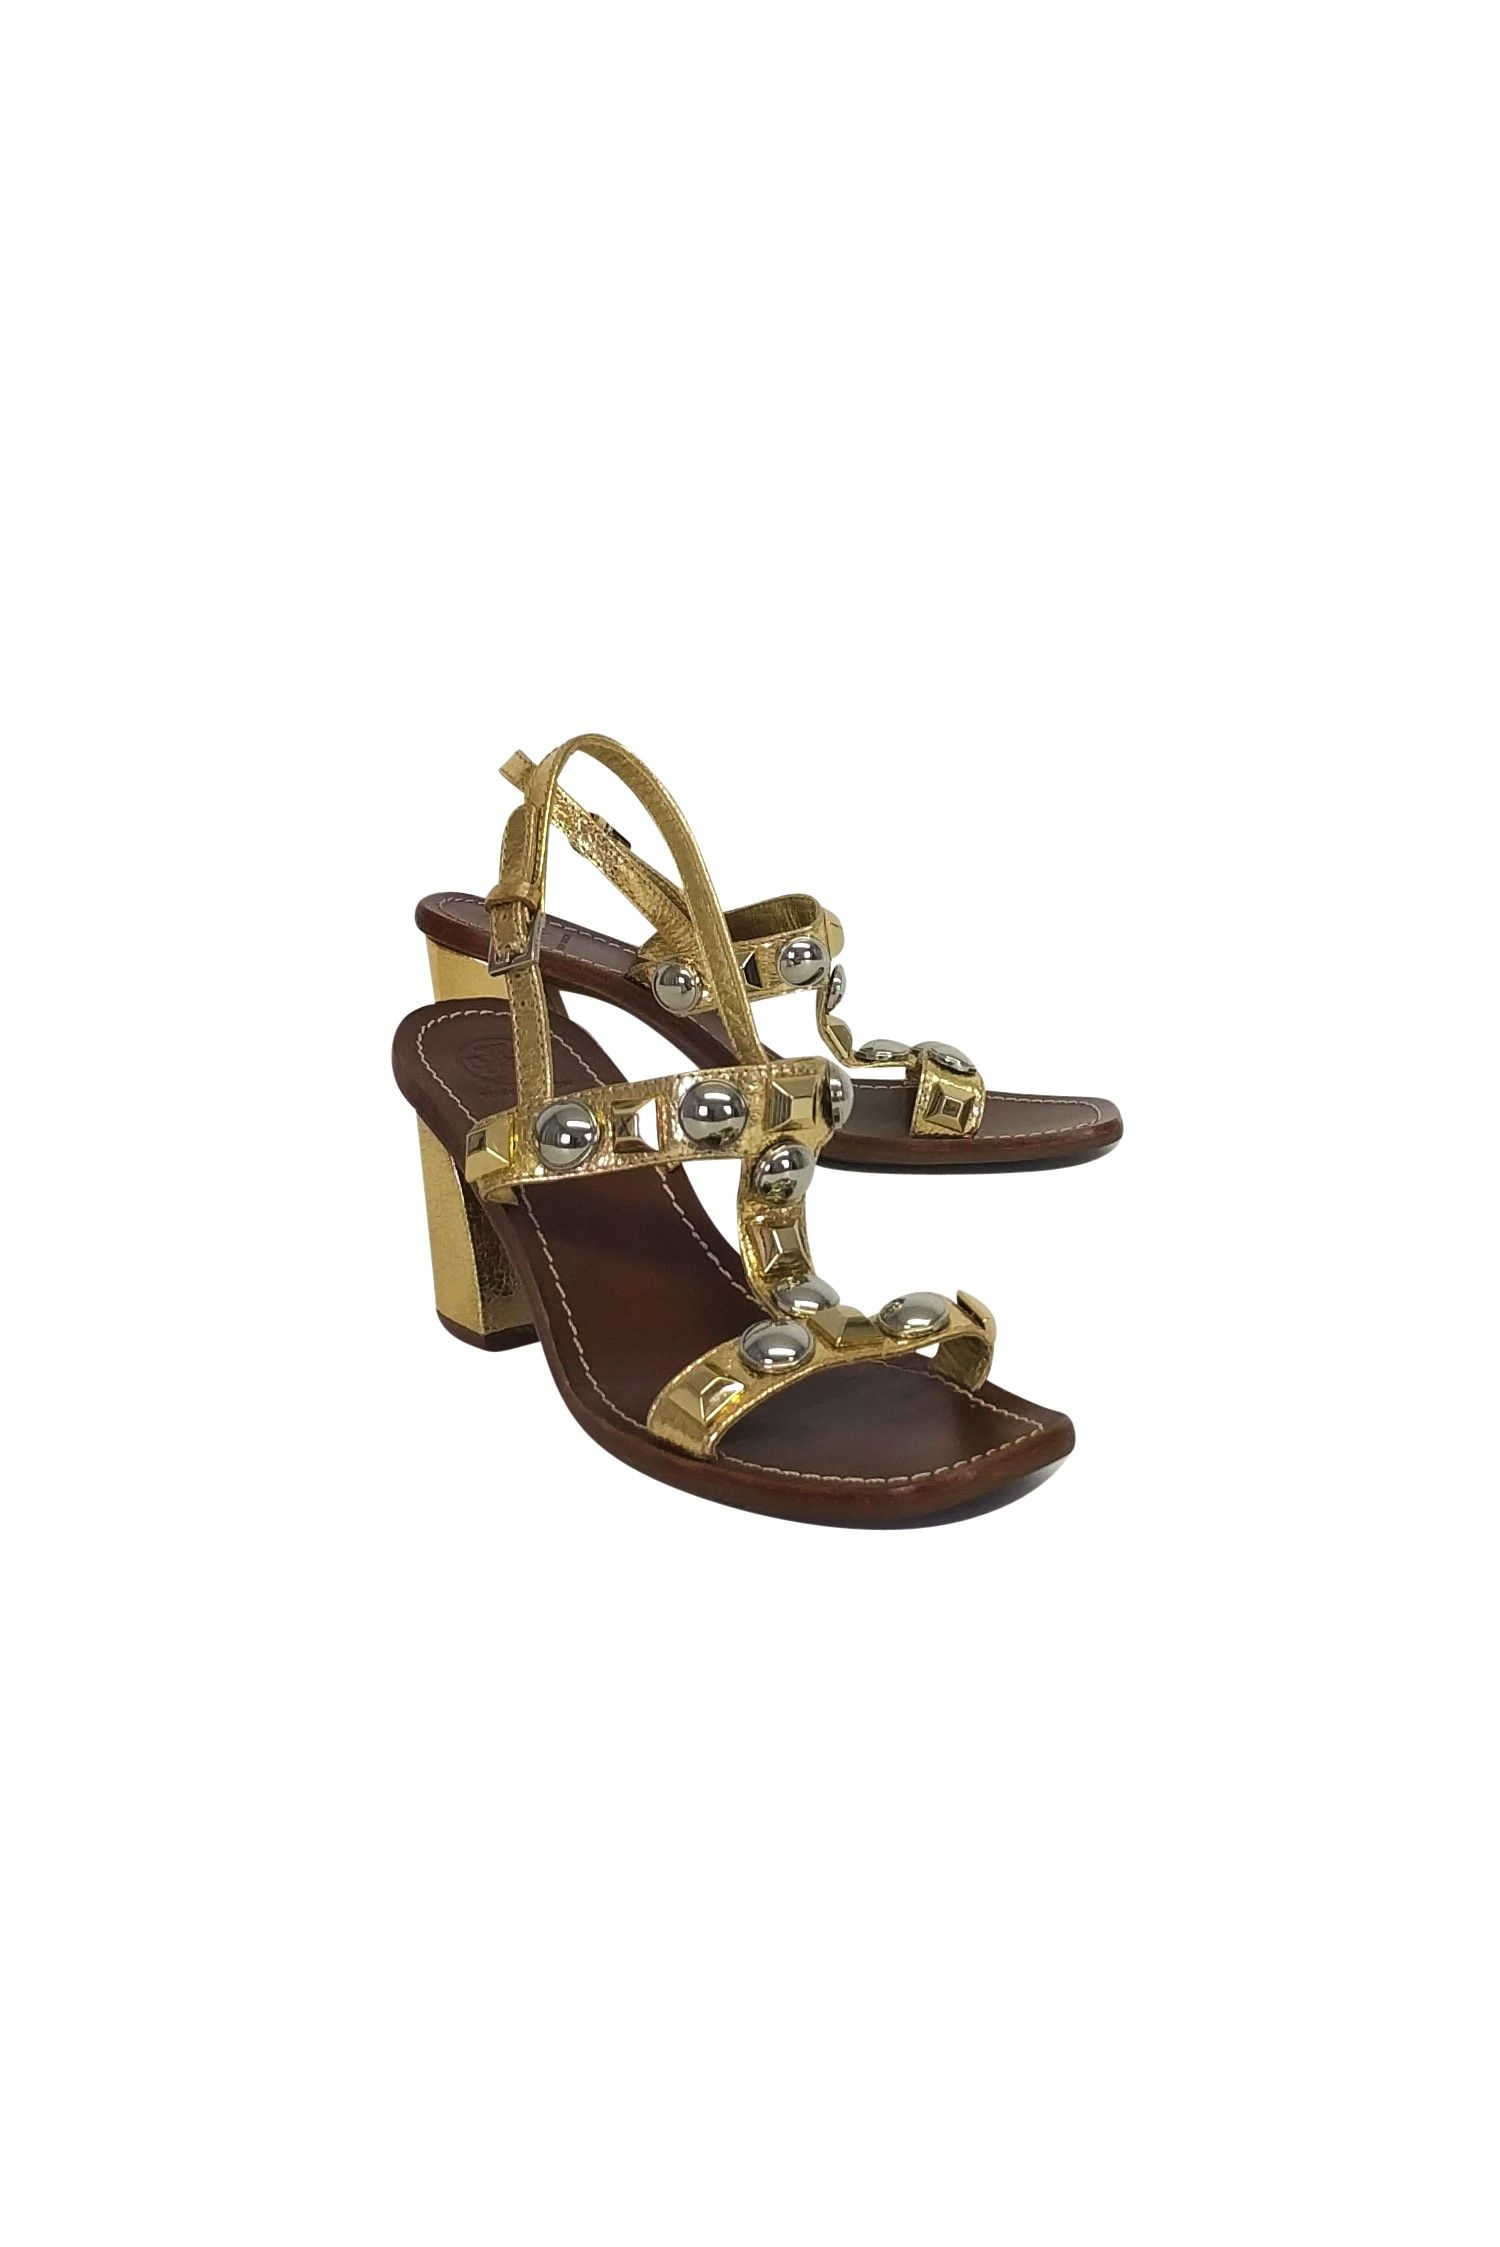 8d70974ba Tory Burch- Gold Jeweled Sandals Sz 9